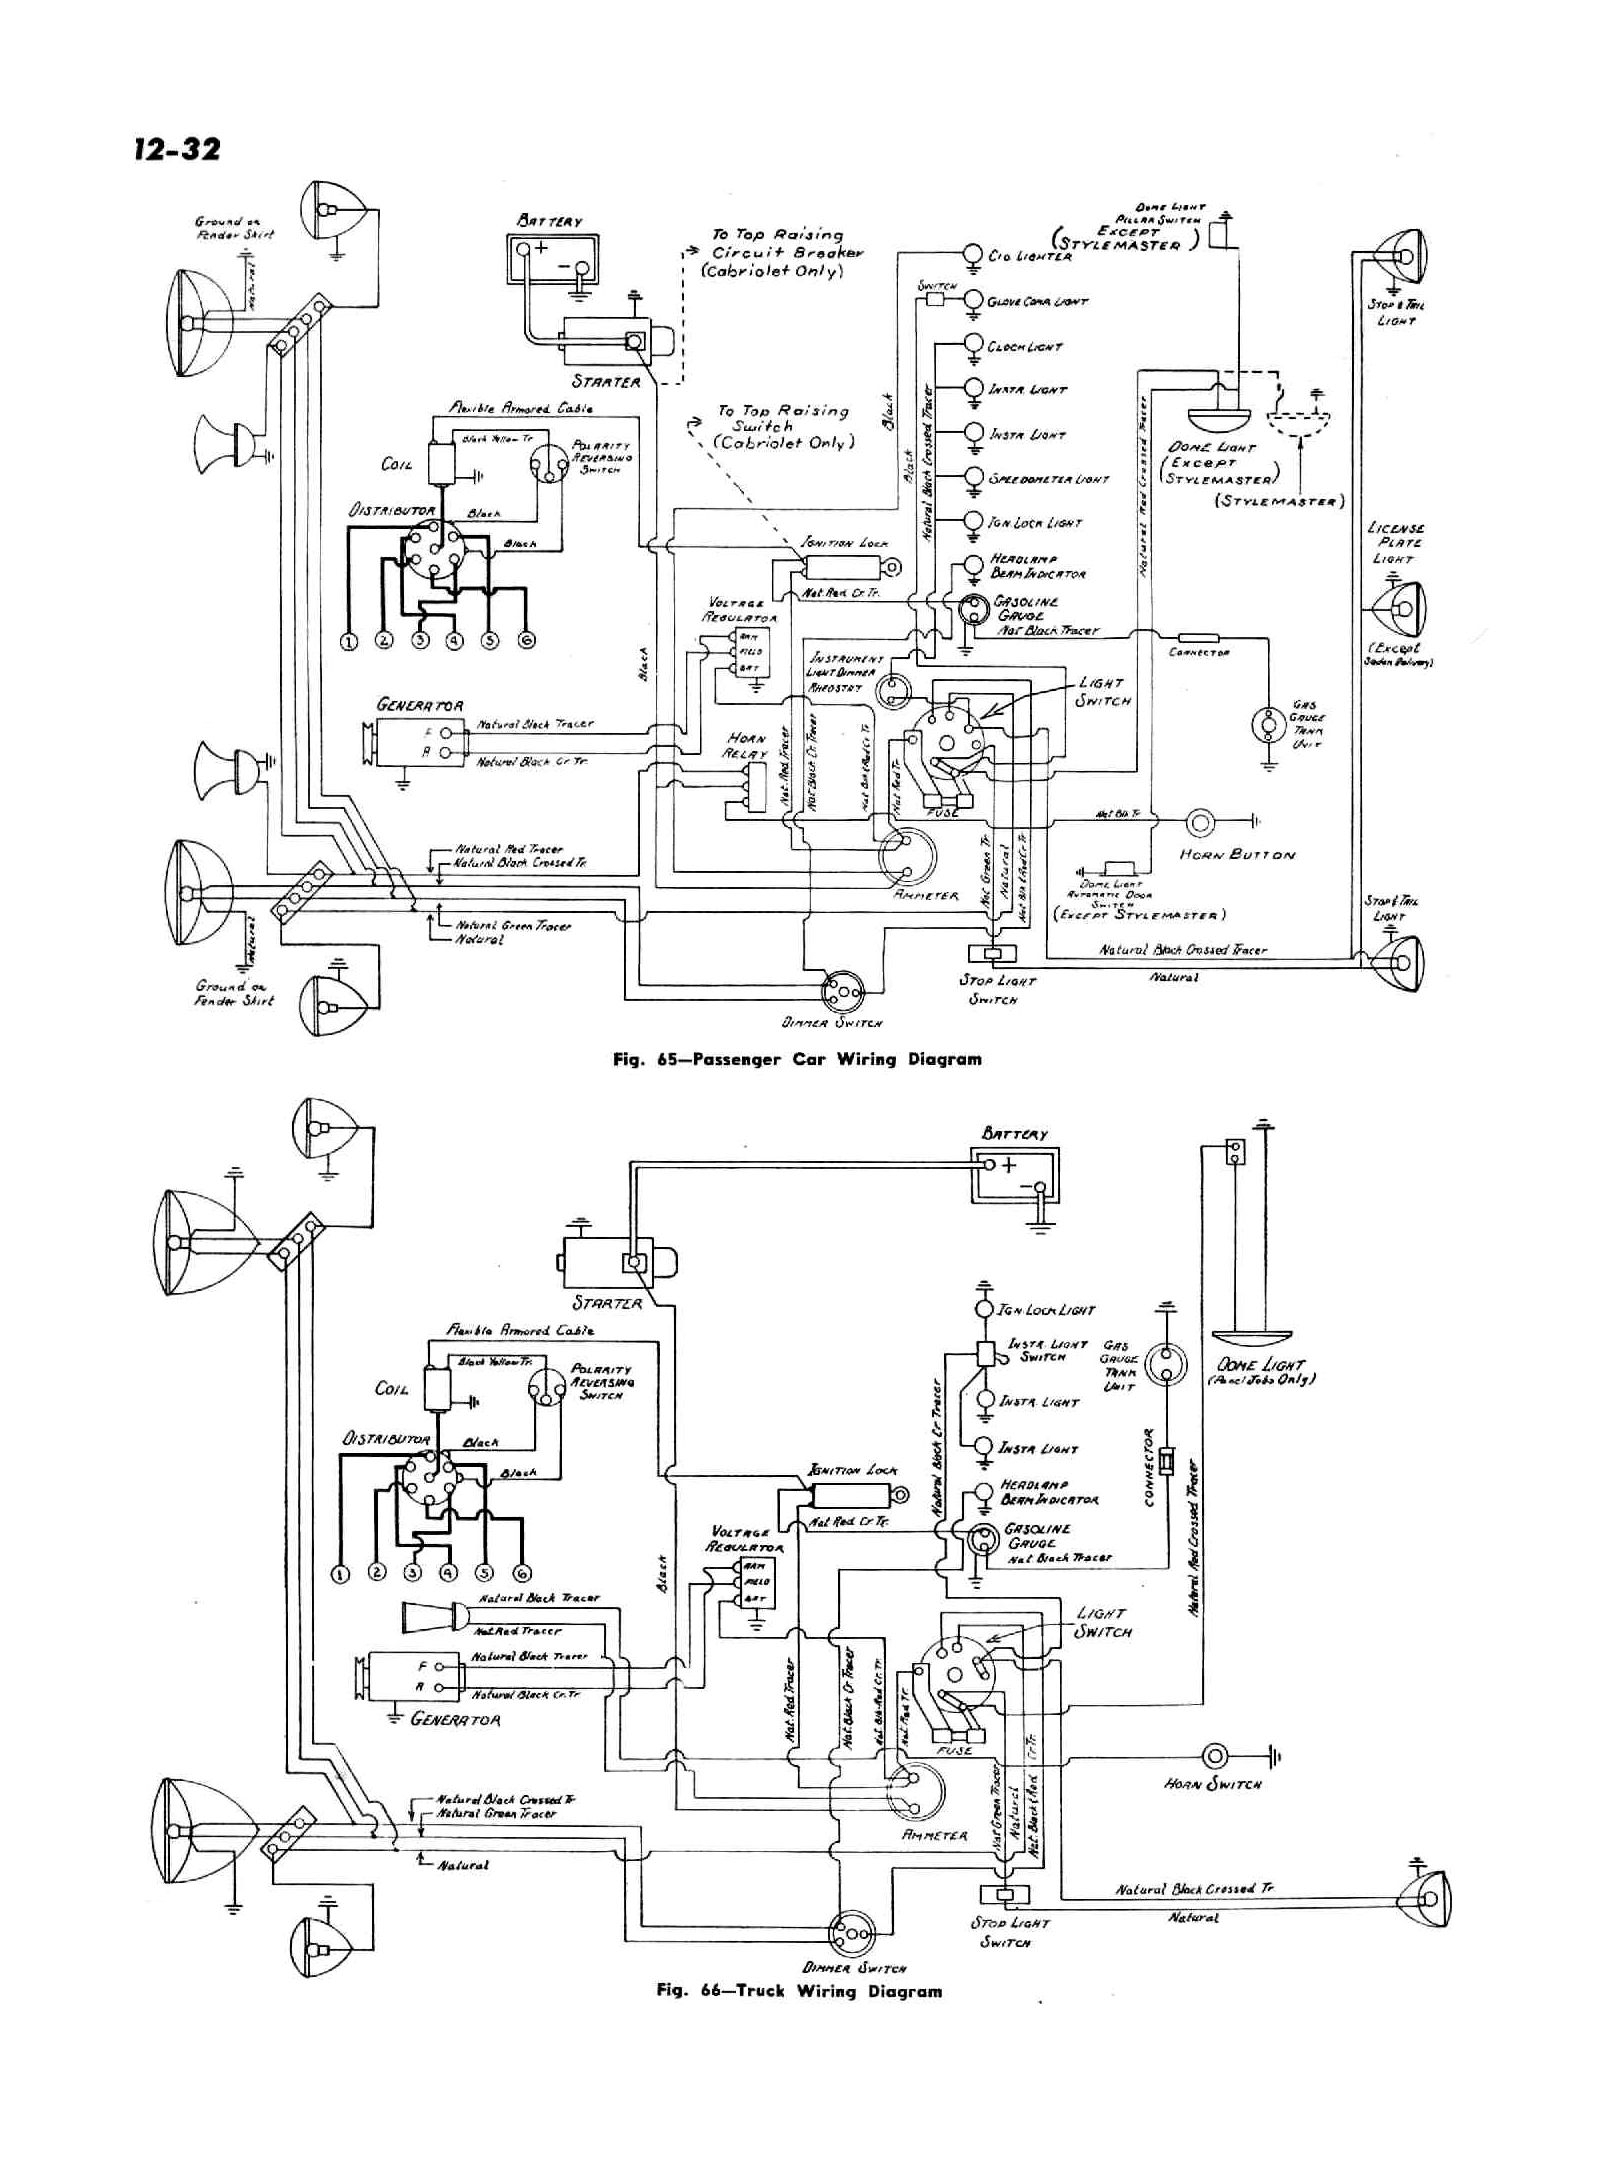 656 light wiring diagram 2004 pontiac grand prix fuse box diagram wiring diagram elsalvadorla [ 1600 x 2164 Pixel ]